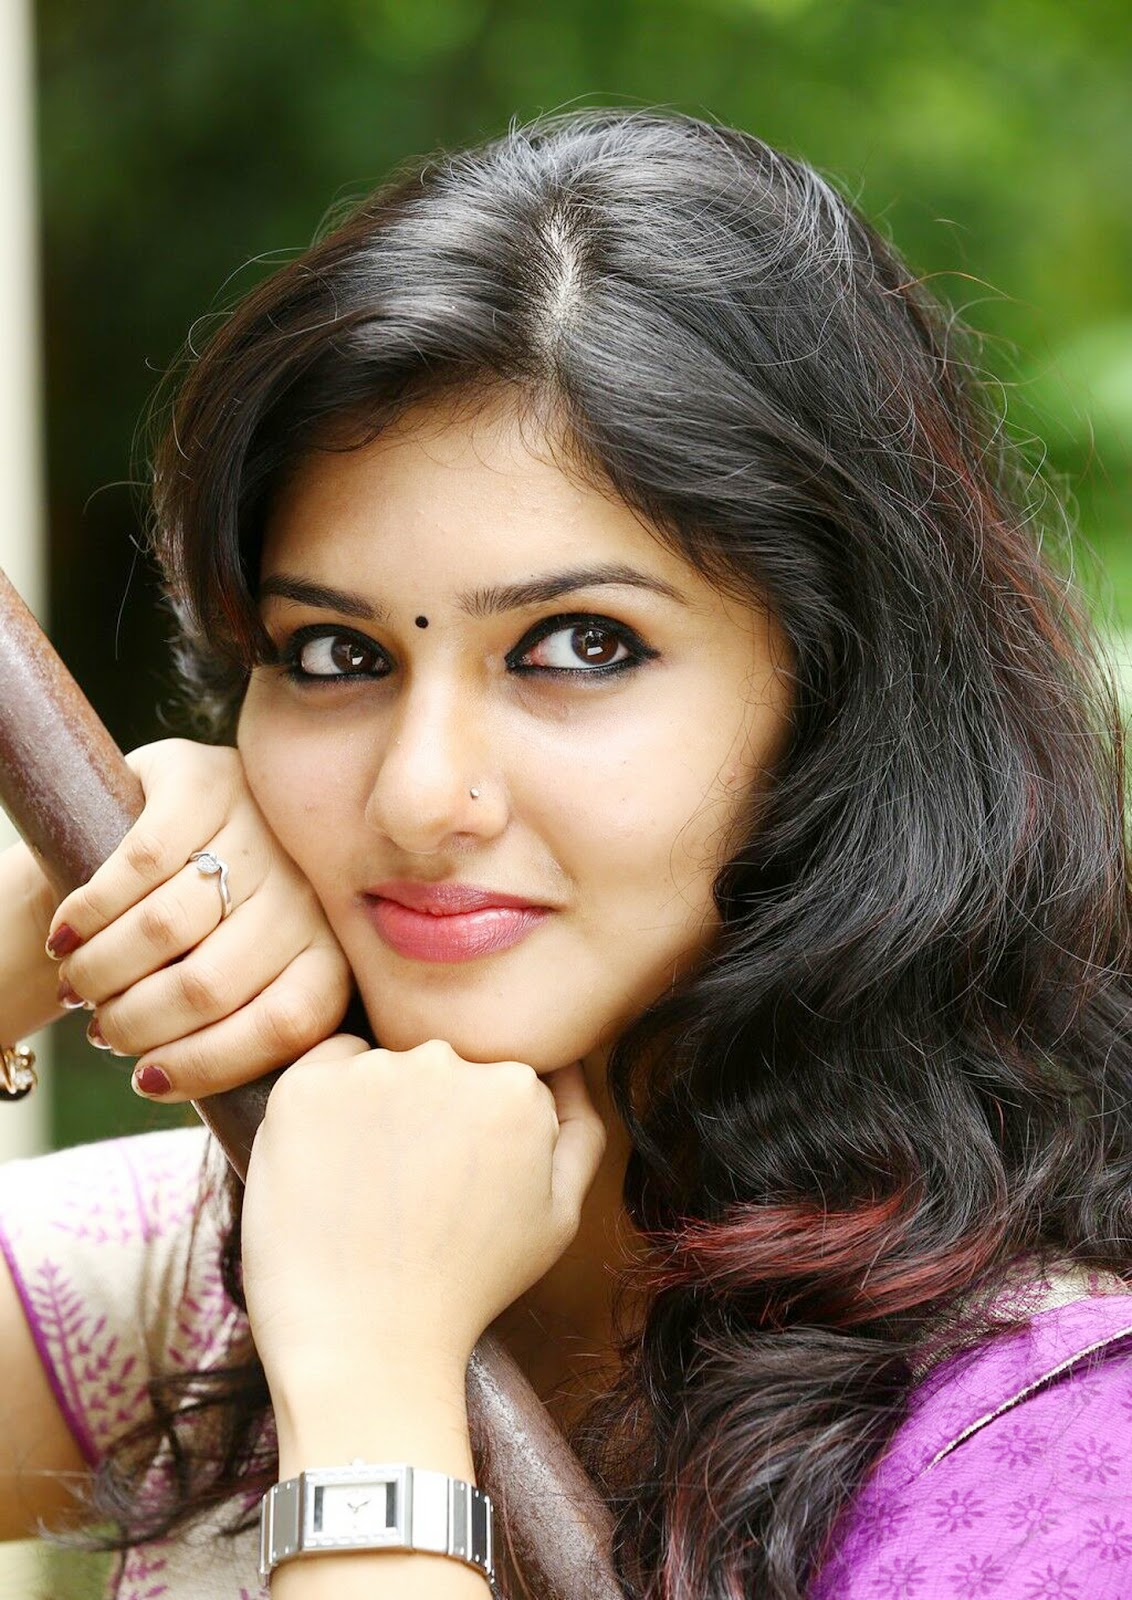 kerala-beauty-girl-sex-photos